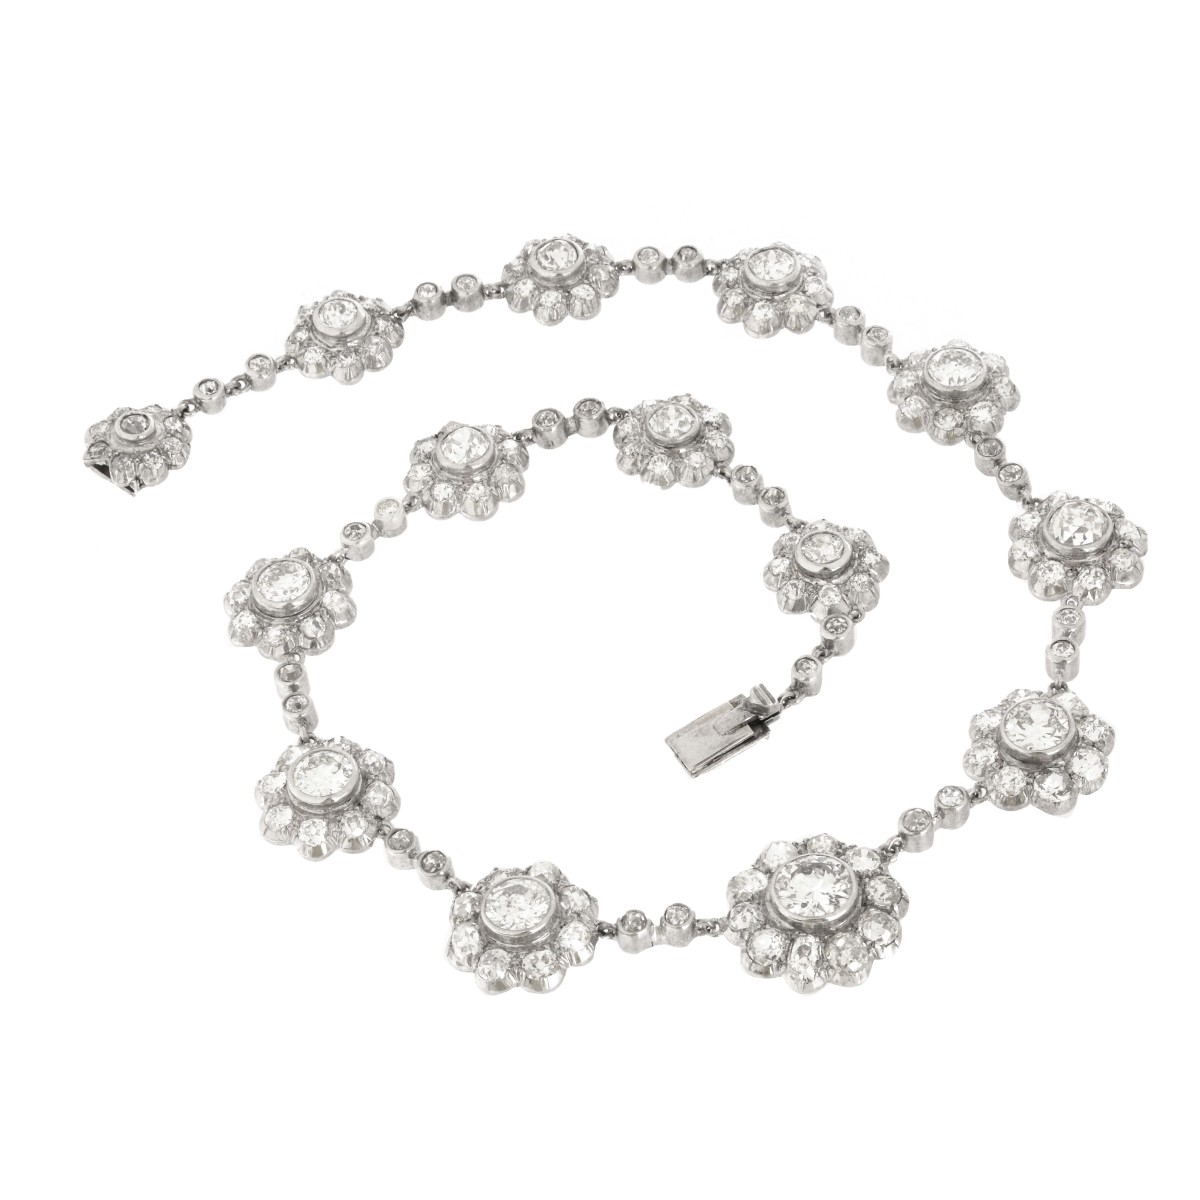 Antique Diamond and Platinum Necklace